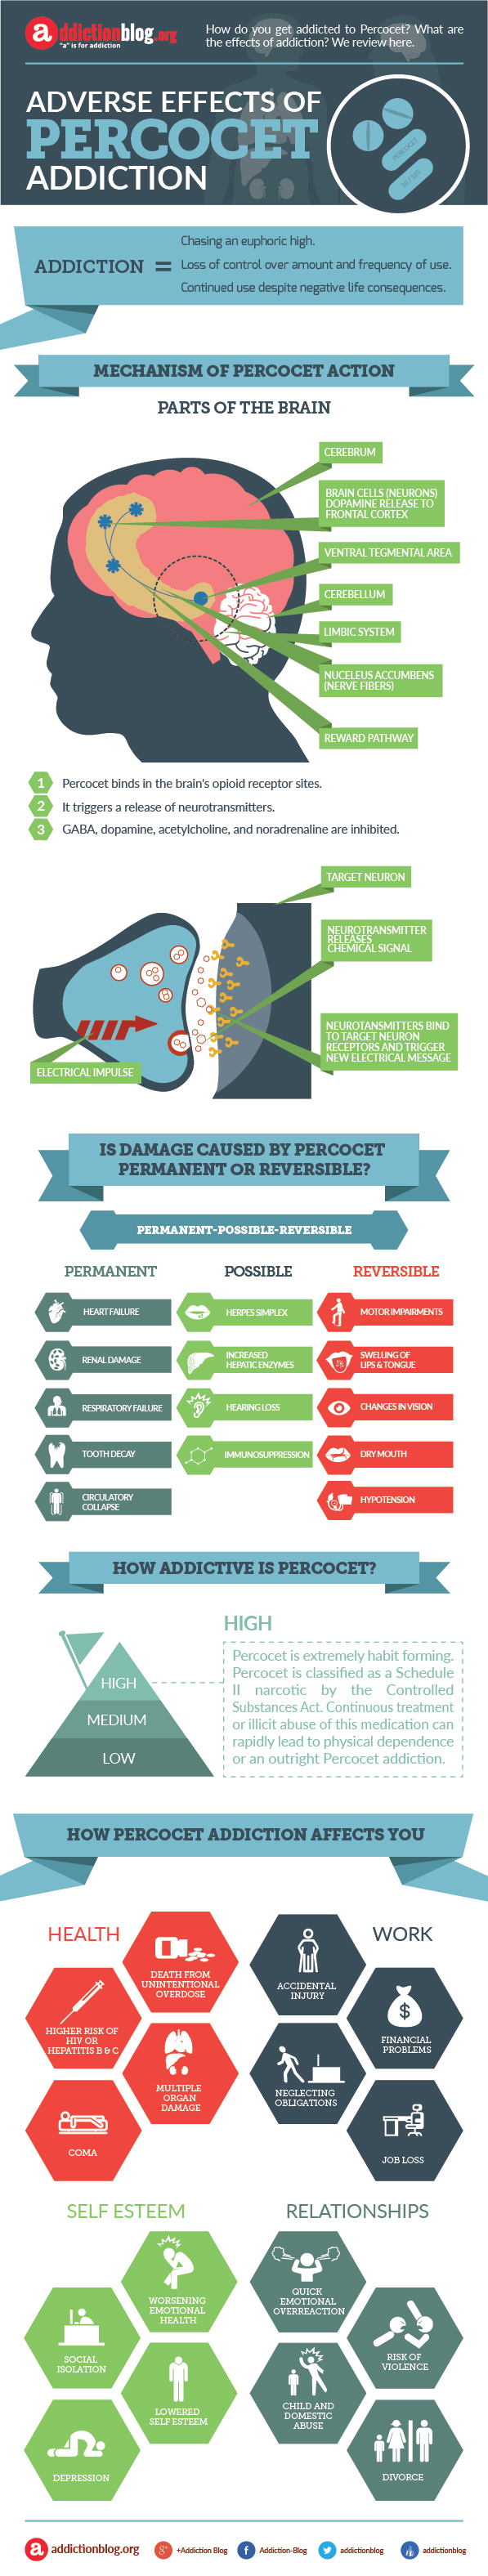 Percocet addiction side effects (INFOGRAPHIC)